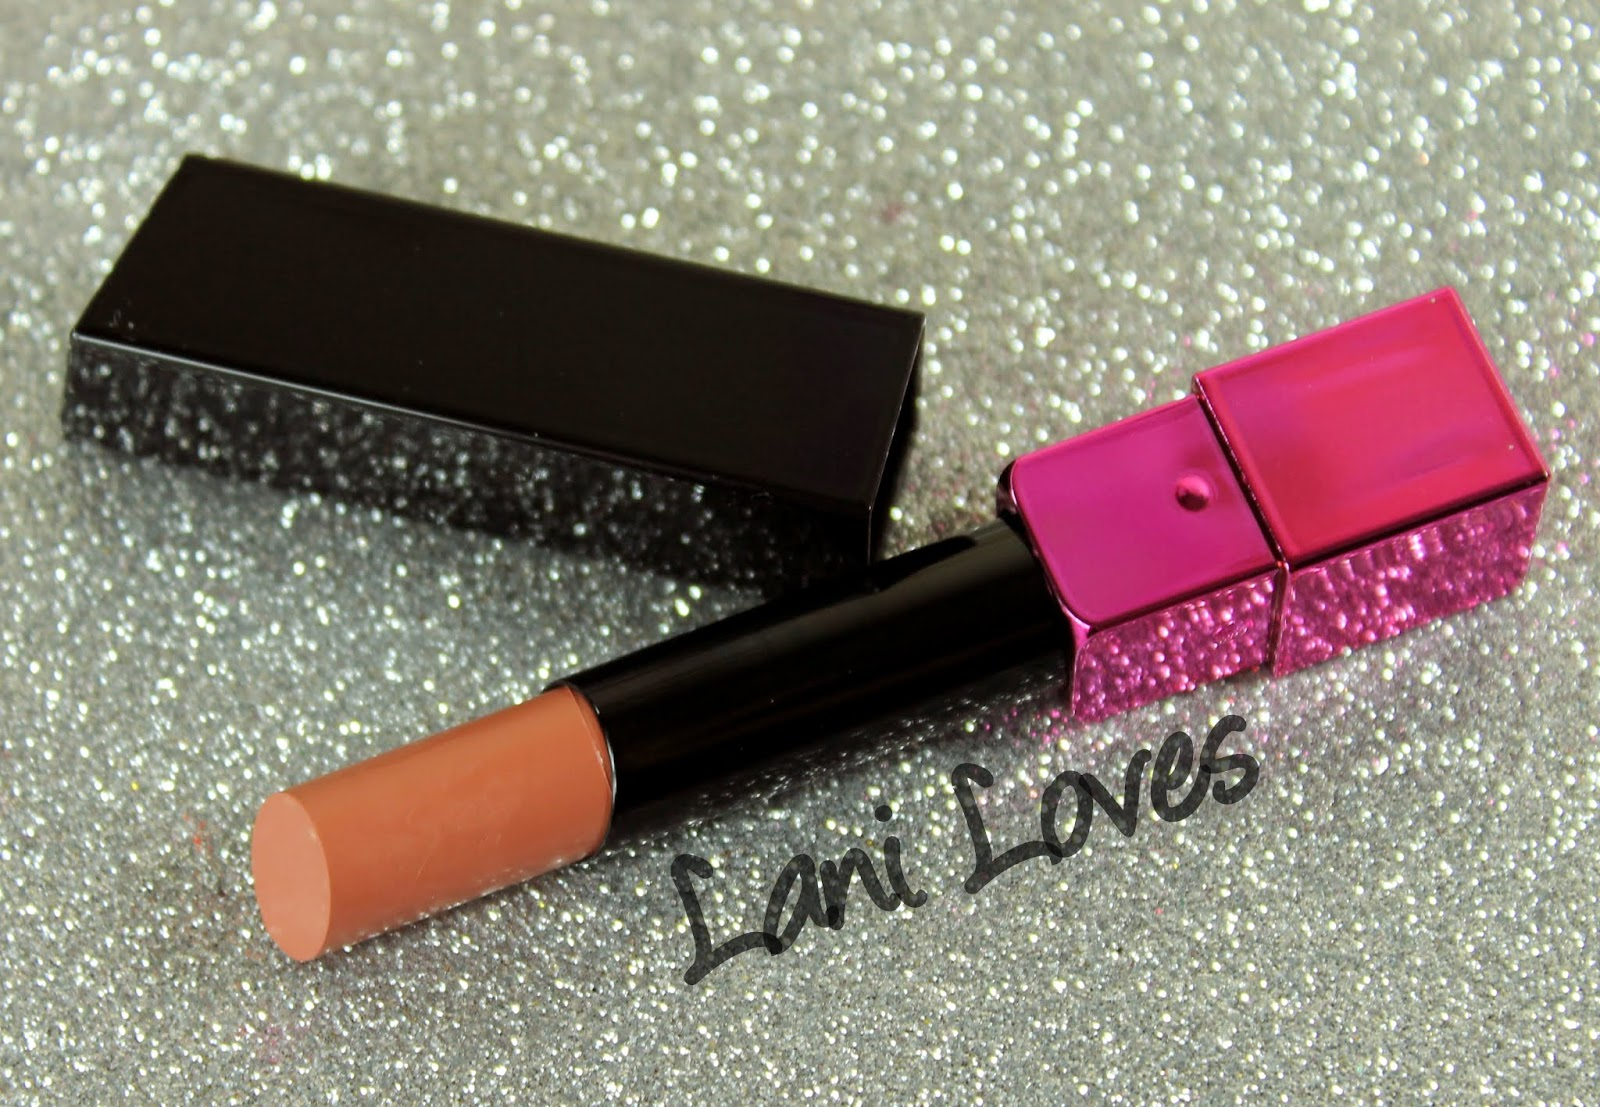 ZA Vibrant Moist Lipstick - BE222 swatches & review